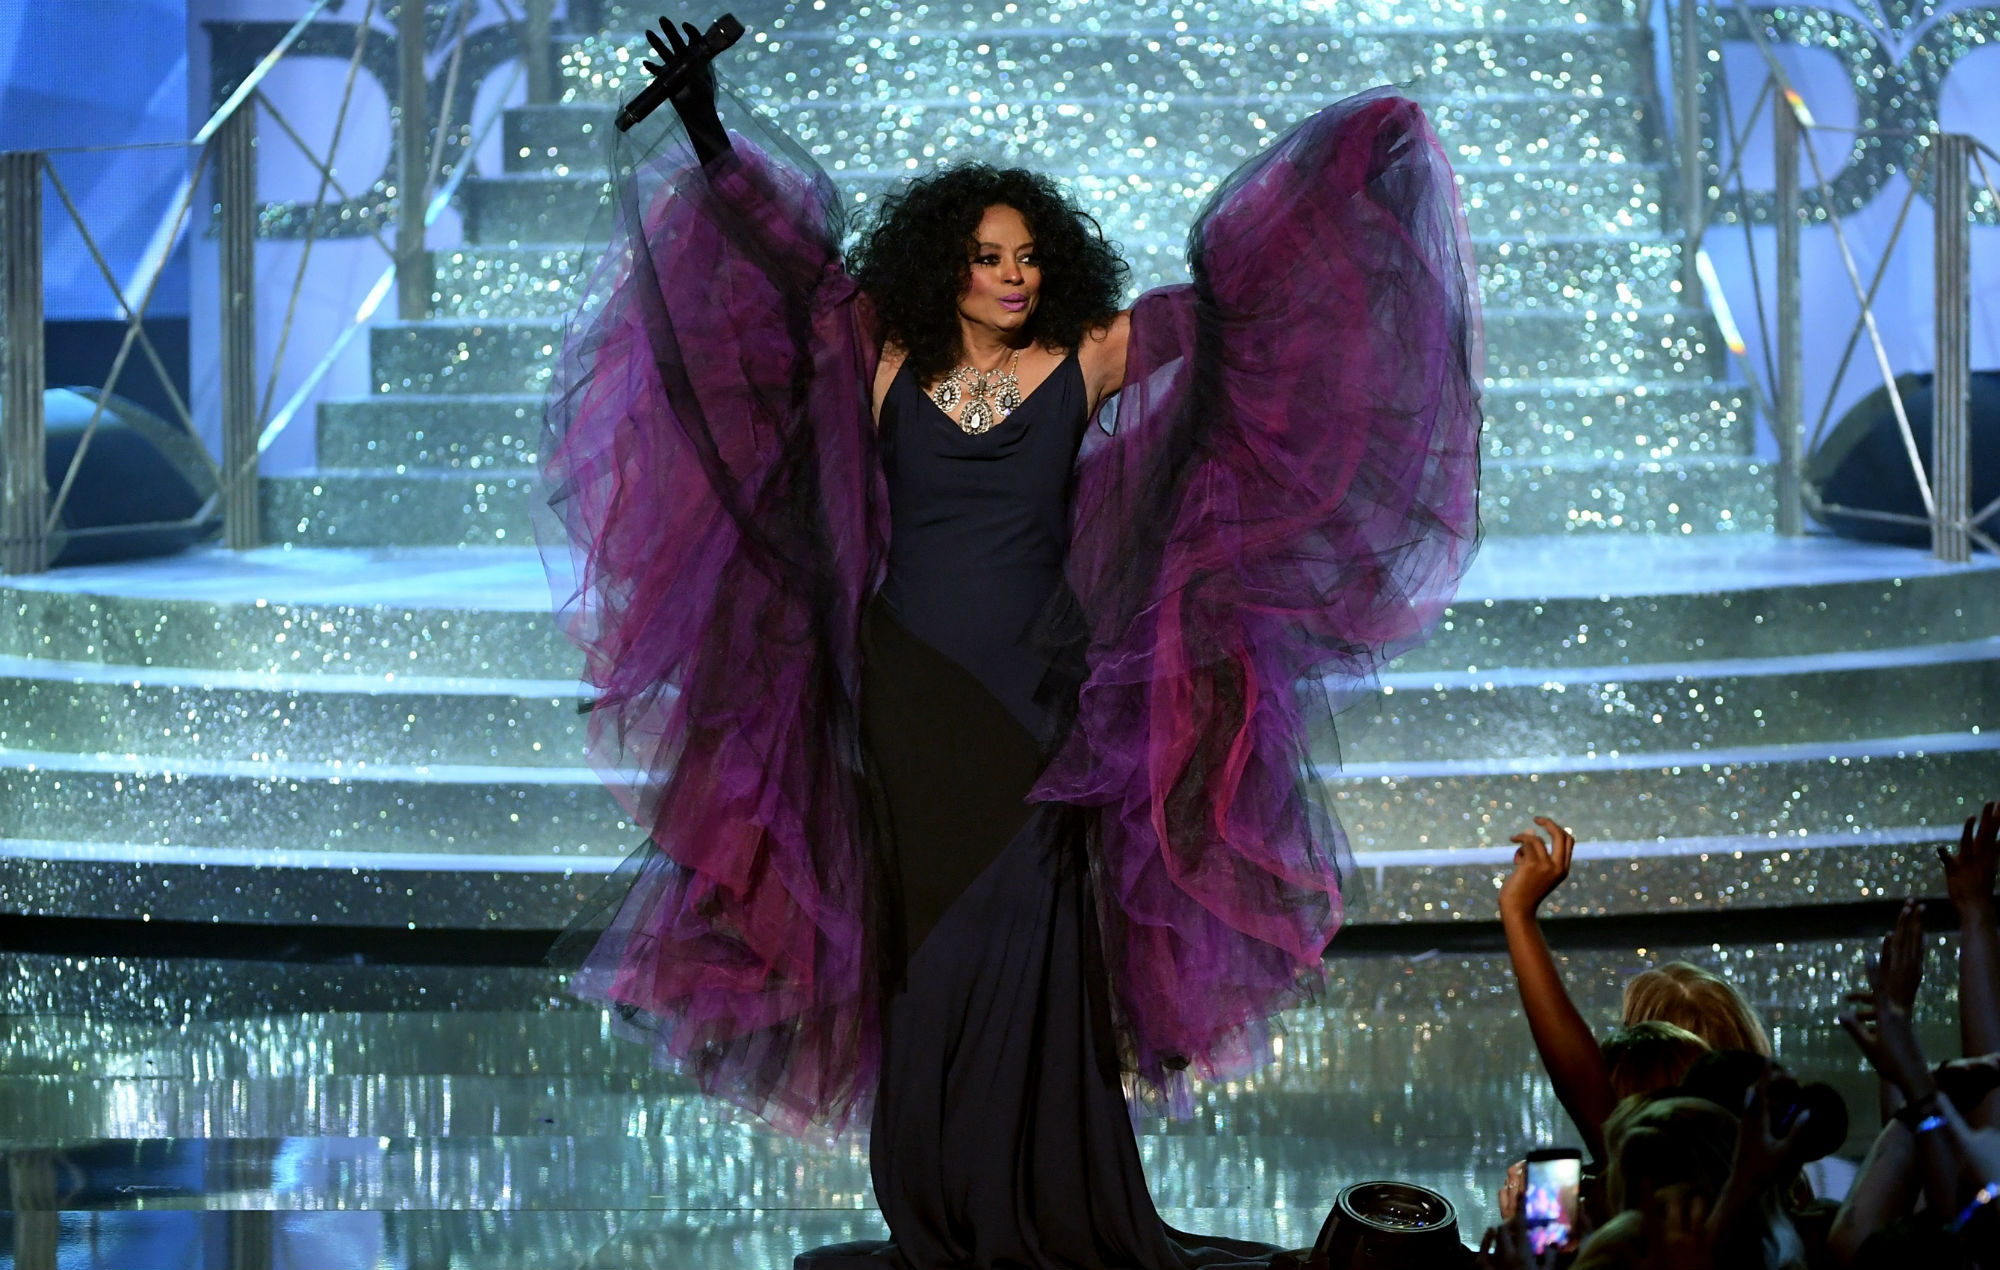 Diana Ross confirmed for the legends slot at Glastonbury 2020